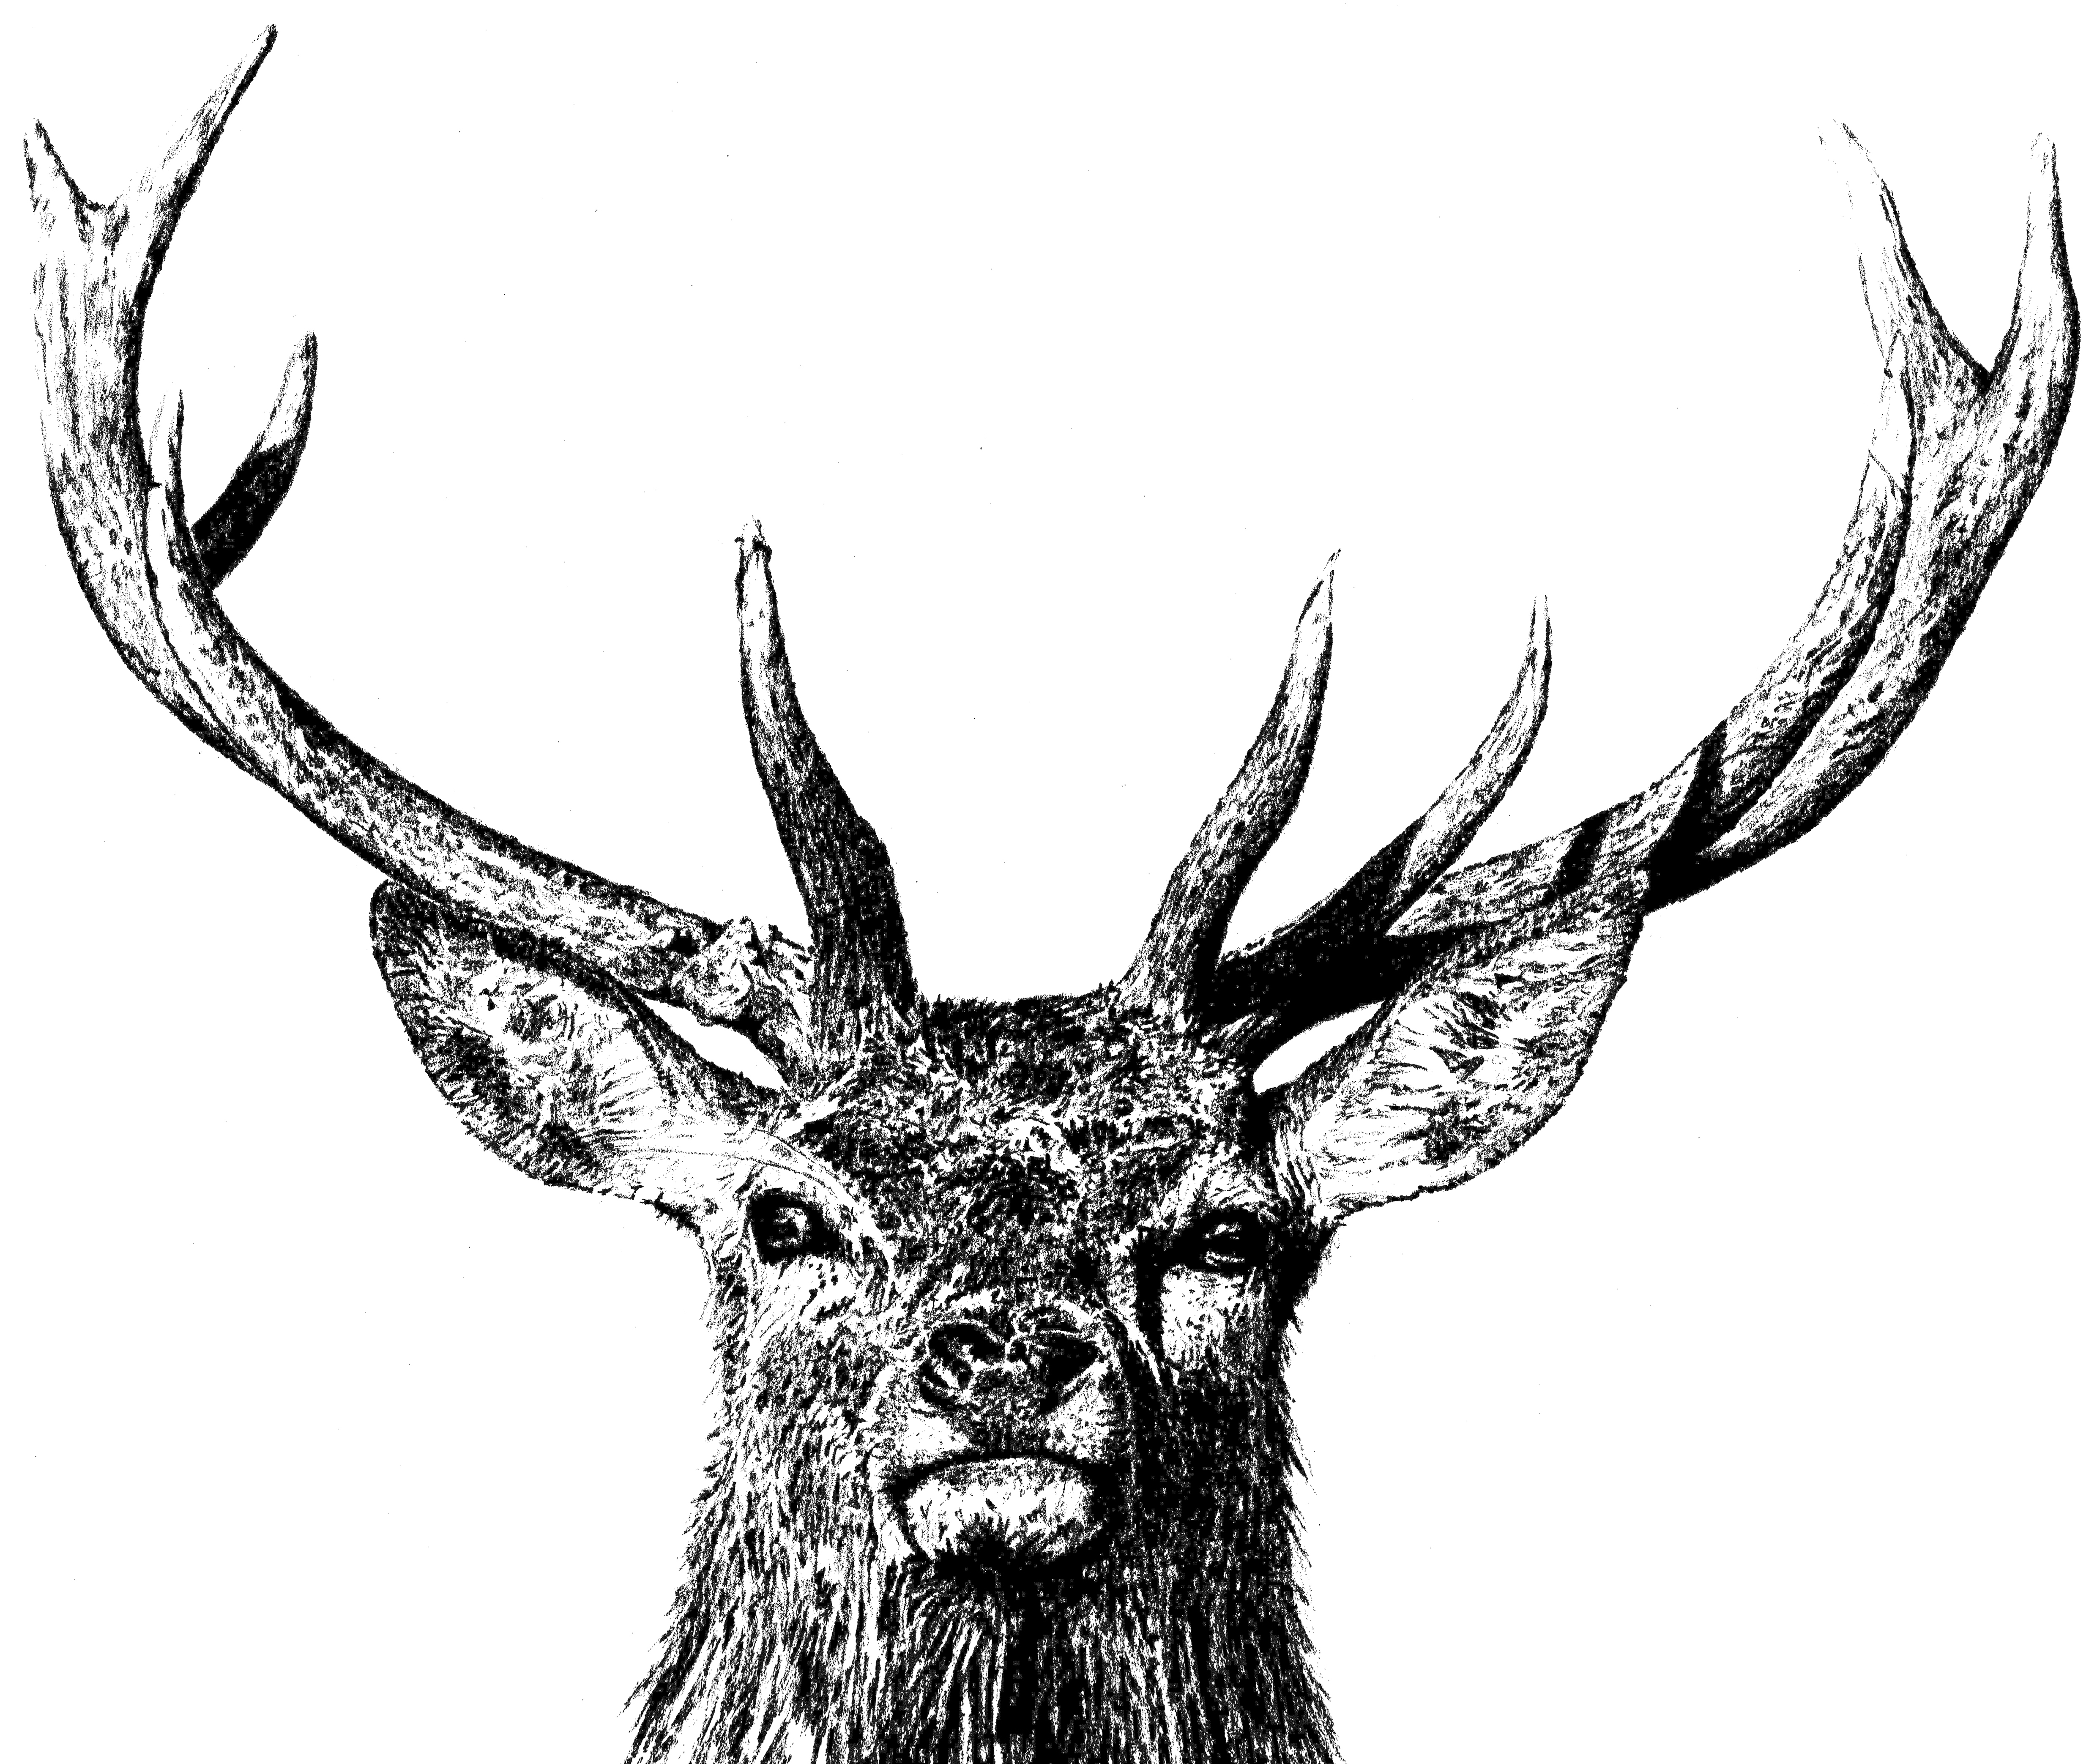 Drawn stag majestic Majestic Arts Table majestic Weaver